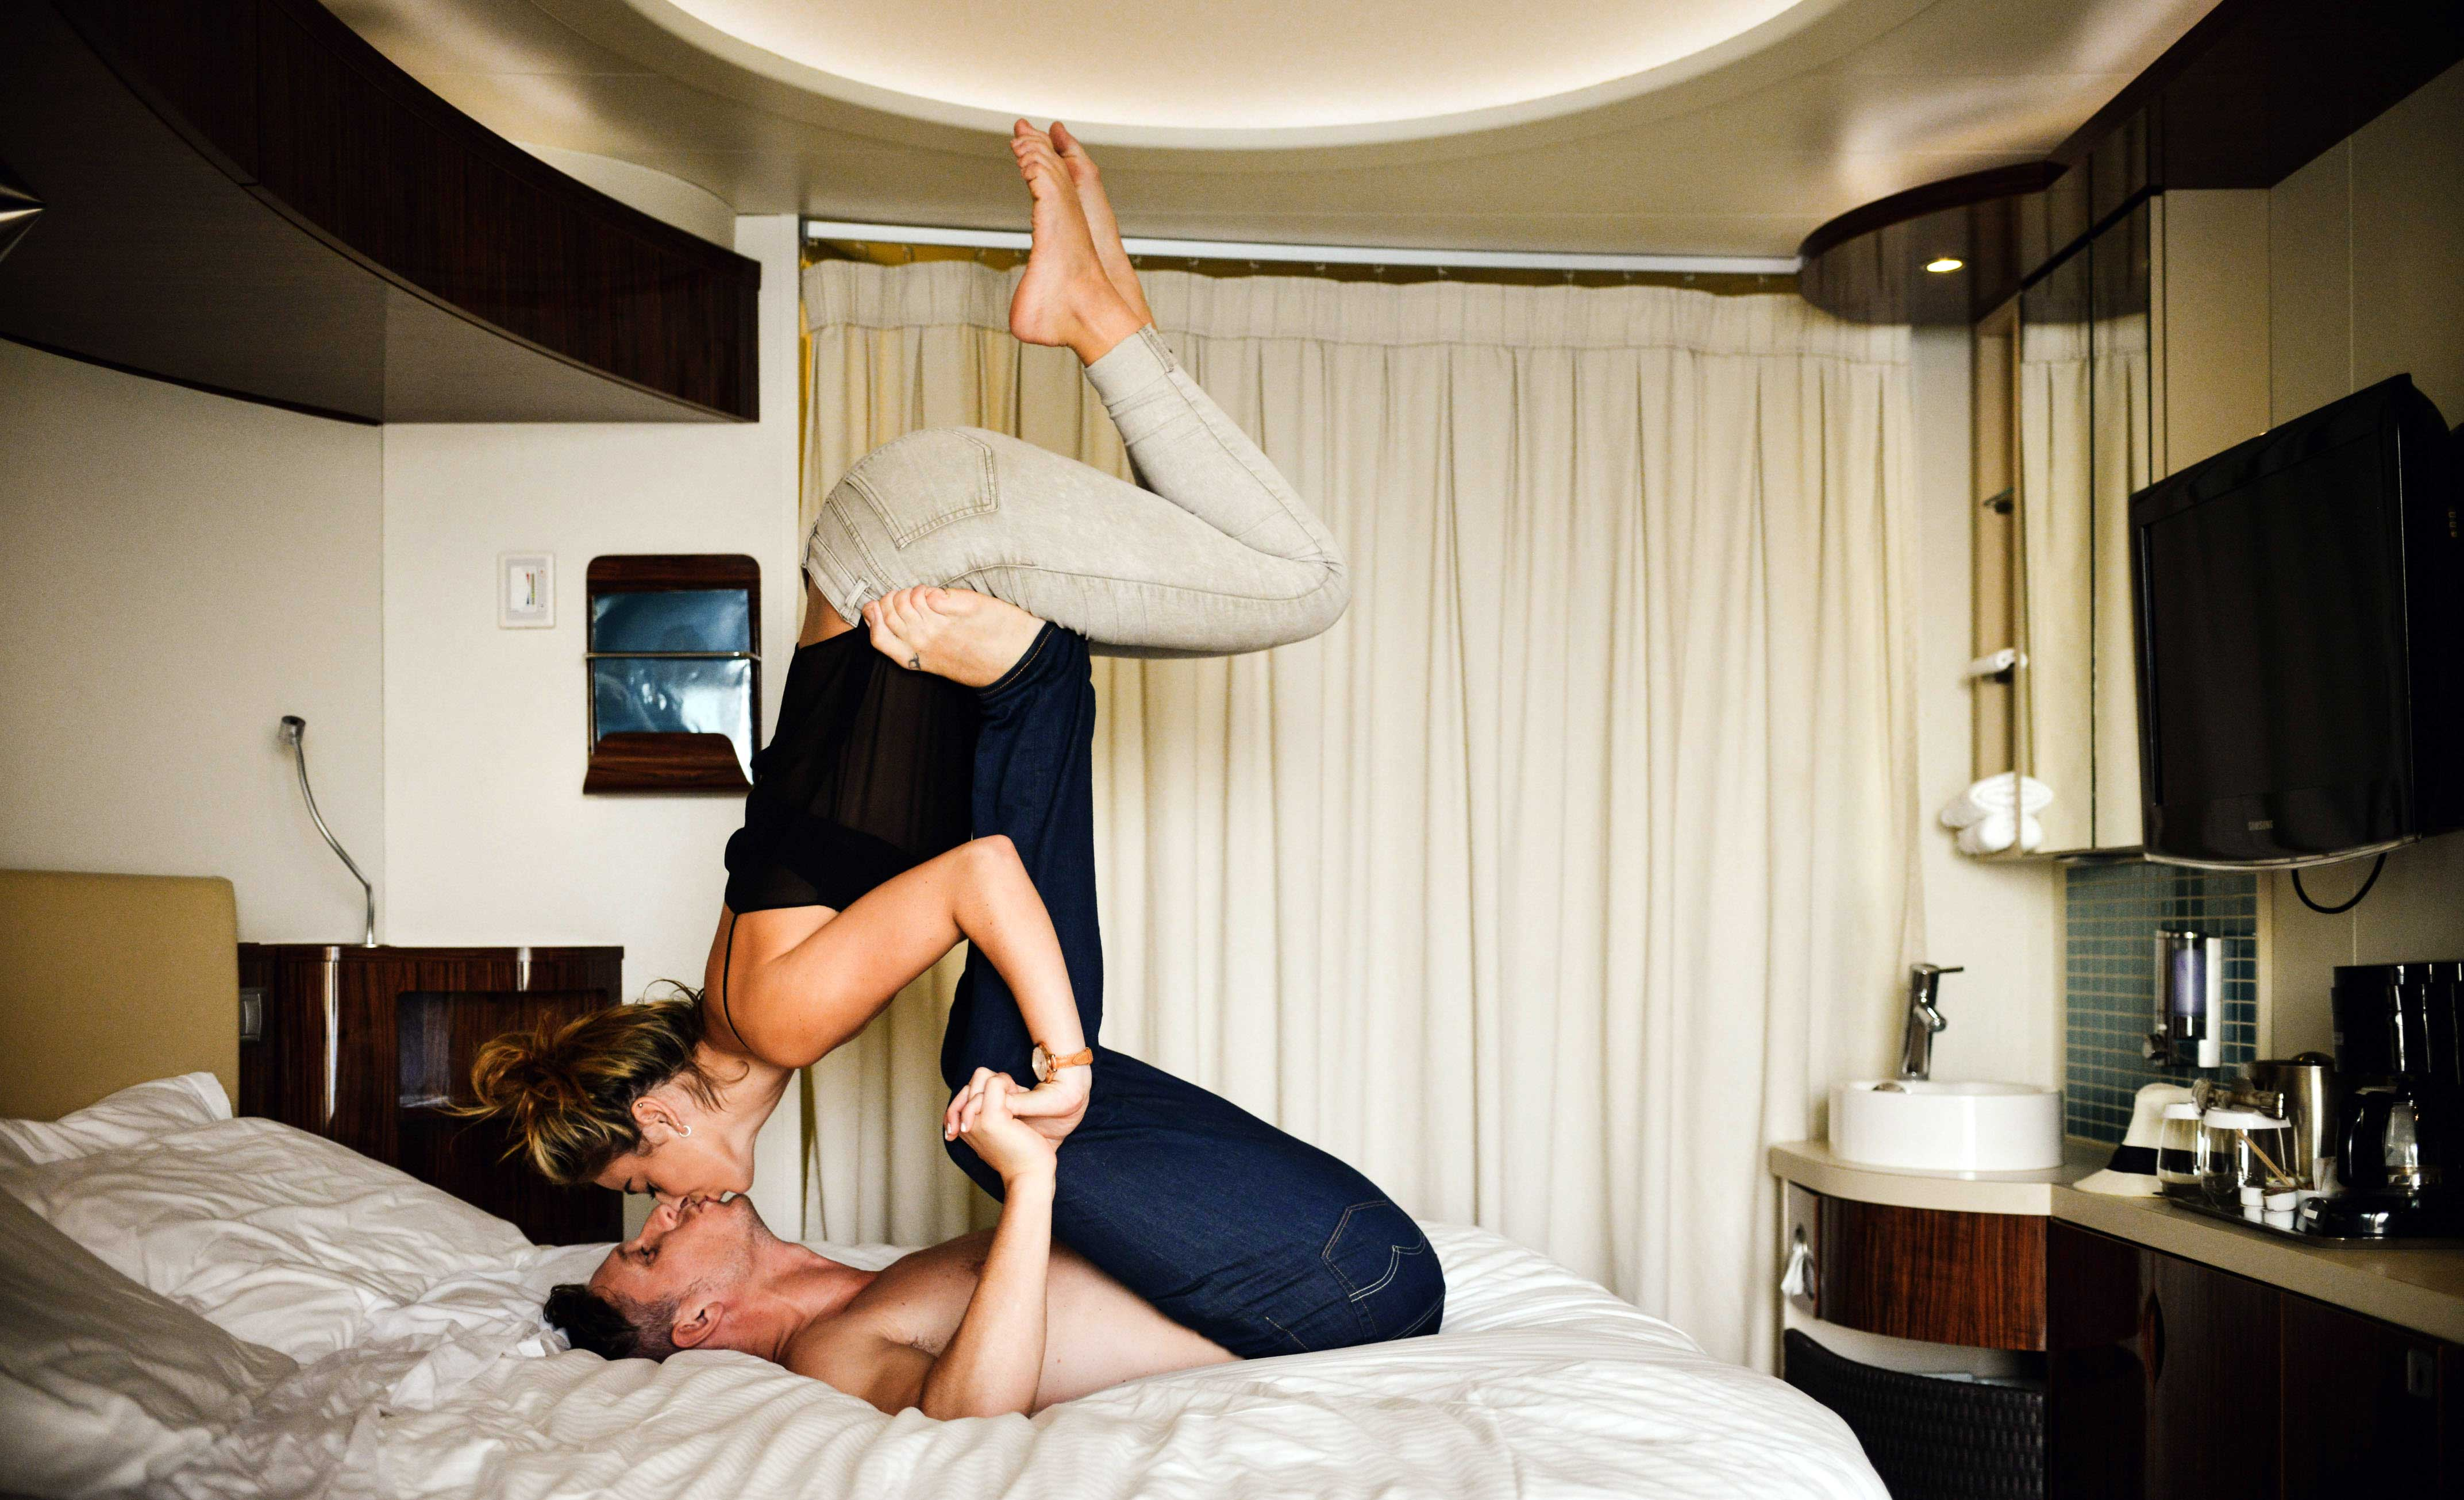 romantic pictures of couples kissing in bed